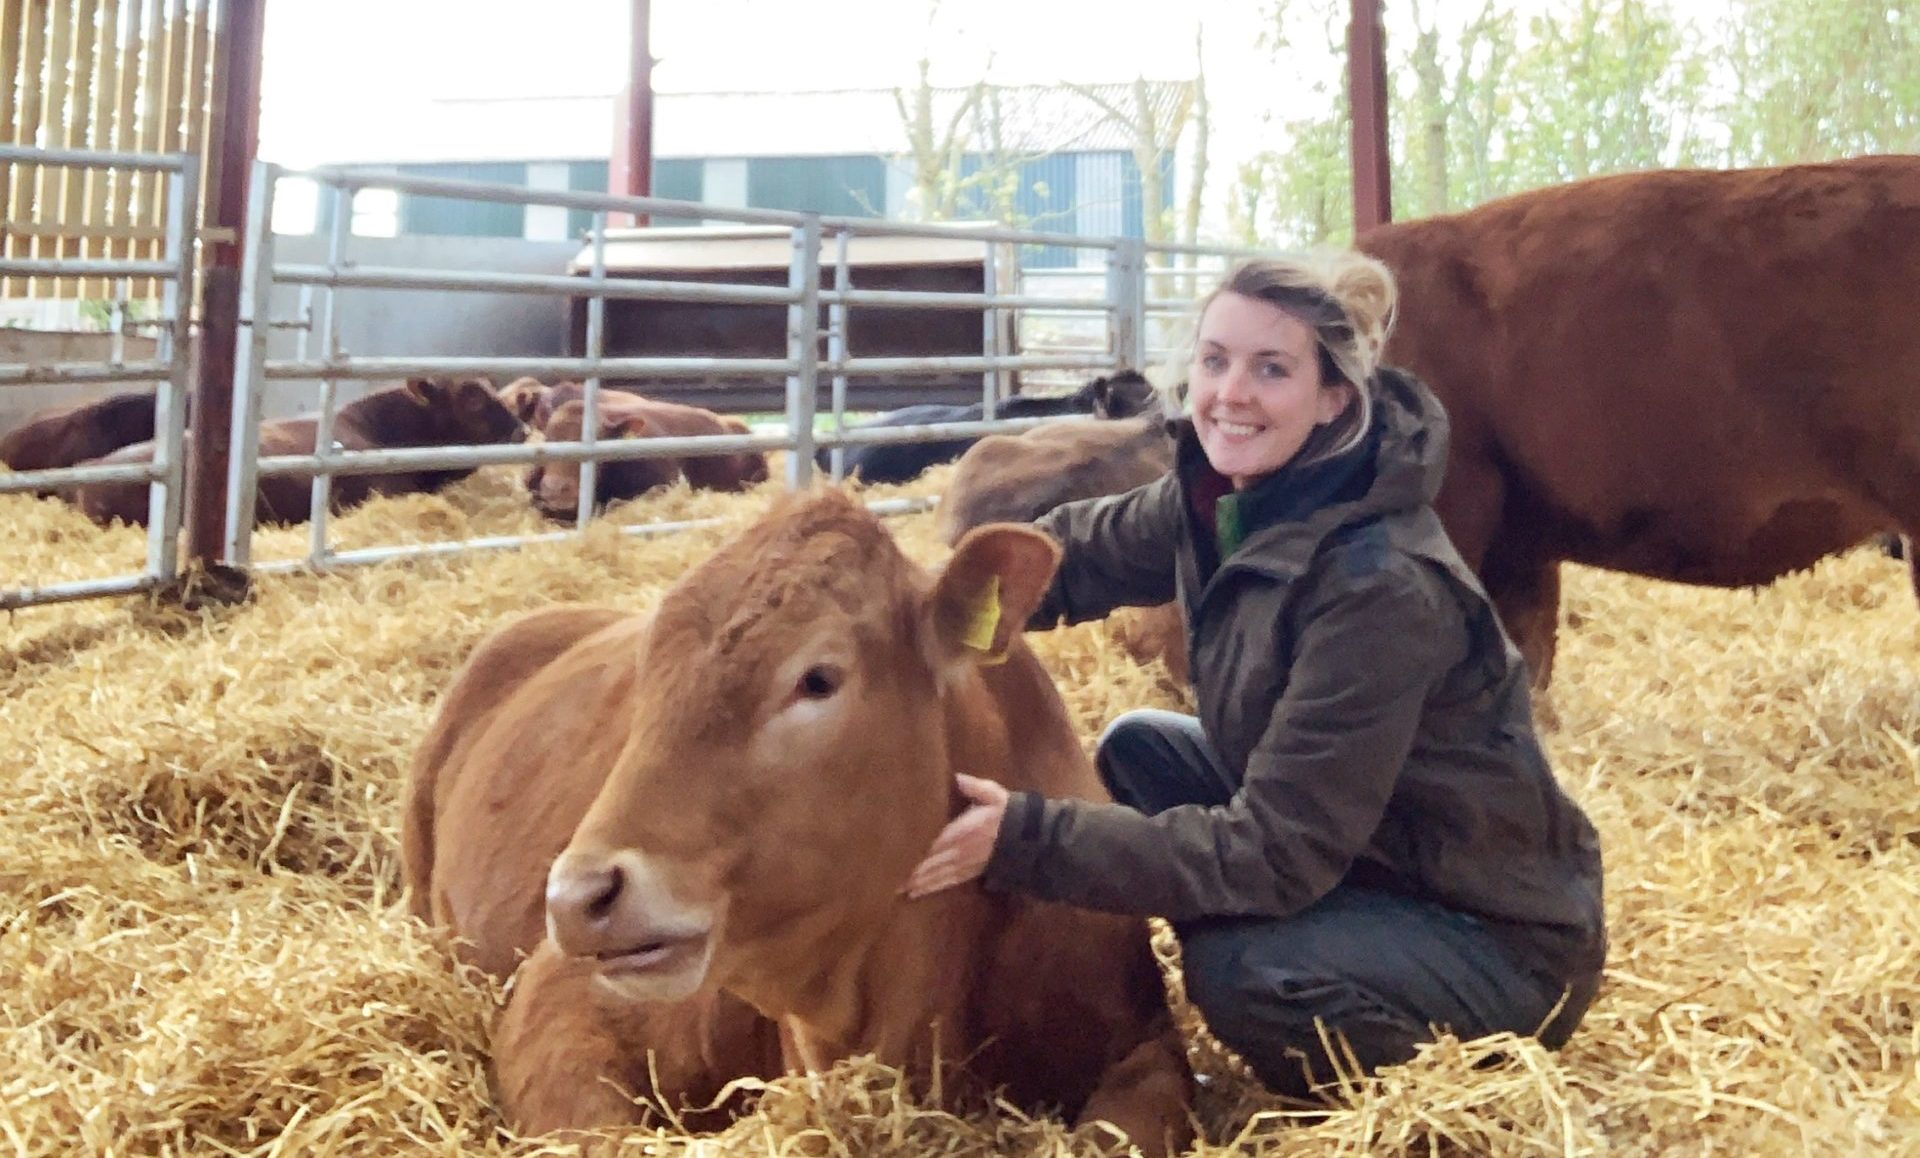 Louise Munro, one of the new ambassadors for Soil Association Scotland